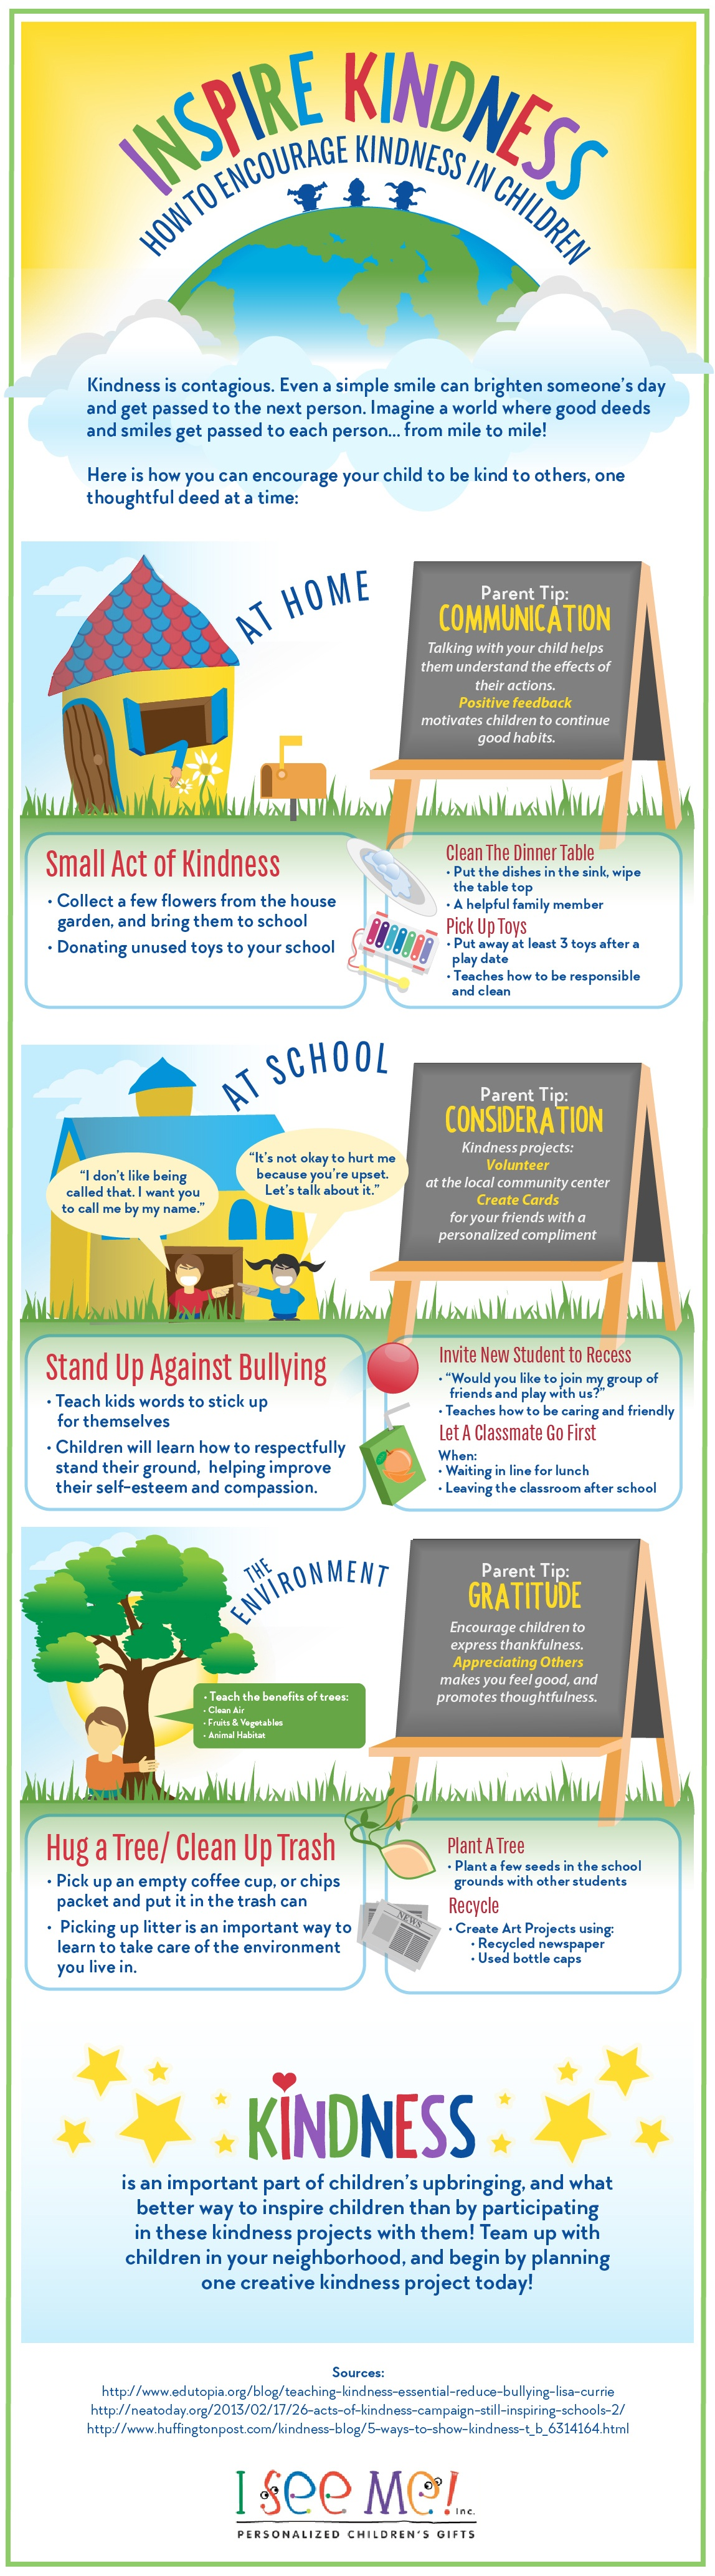 How to Encourage Kindness in Children Infographic